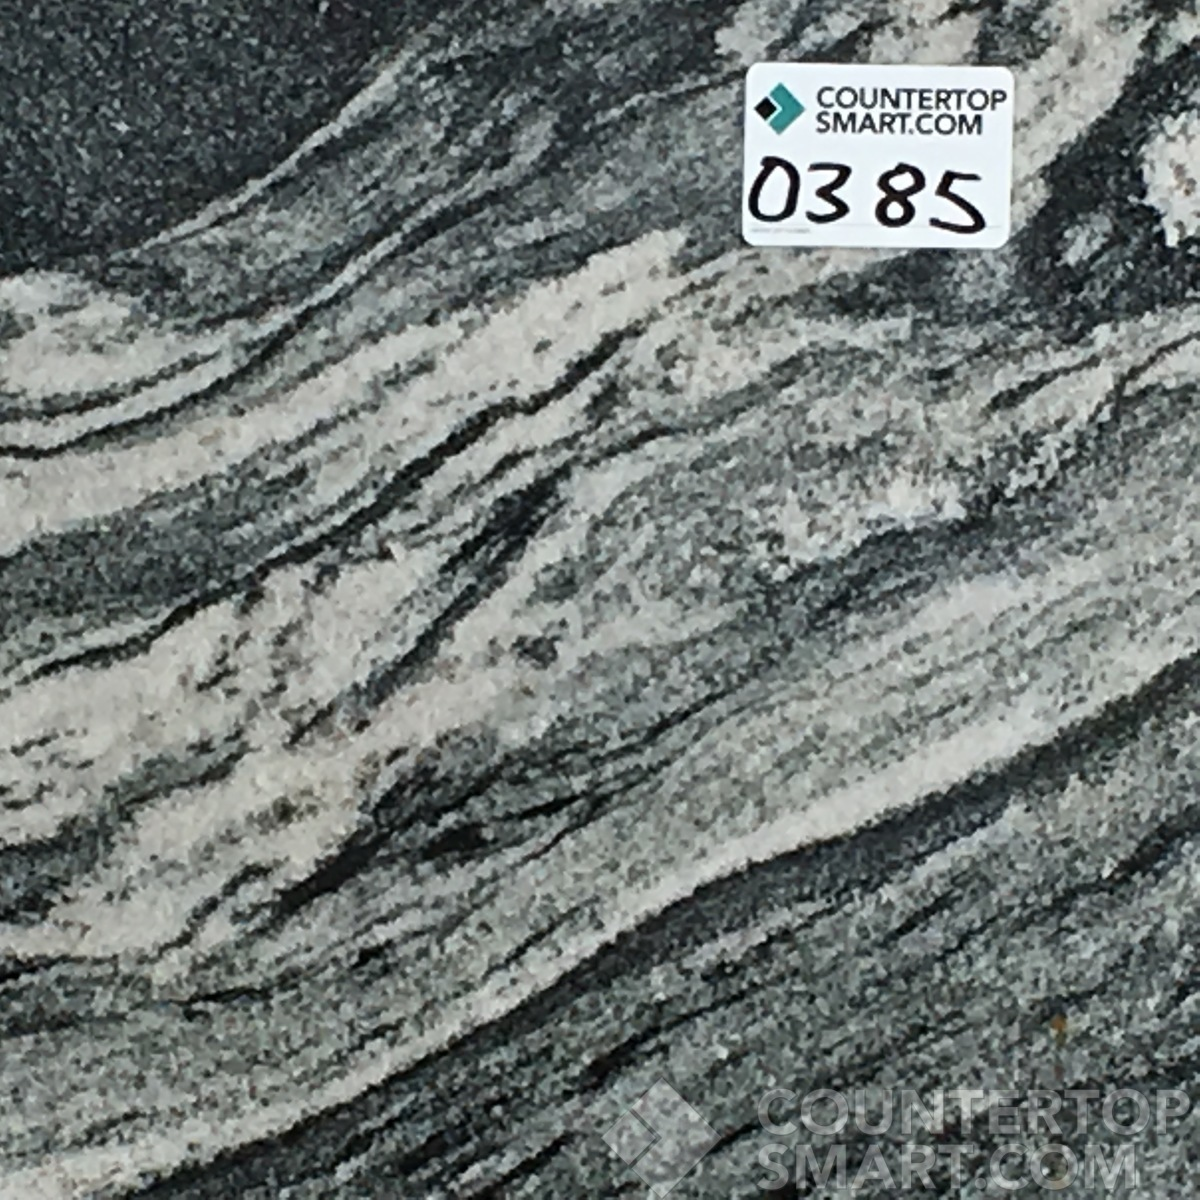 80 Off Your Perfect Granite Silver Cloud Countertop Remnant In Austin Texas Only 255 82